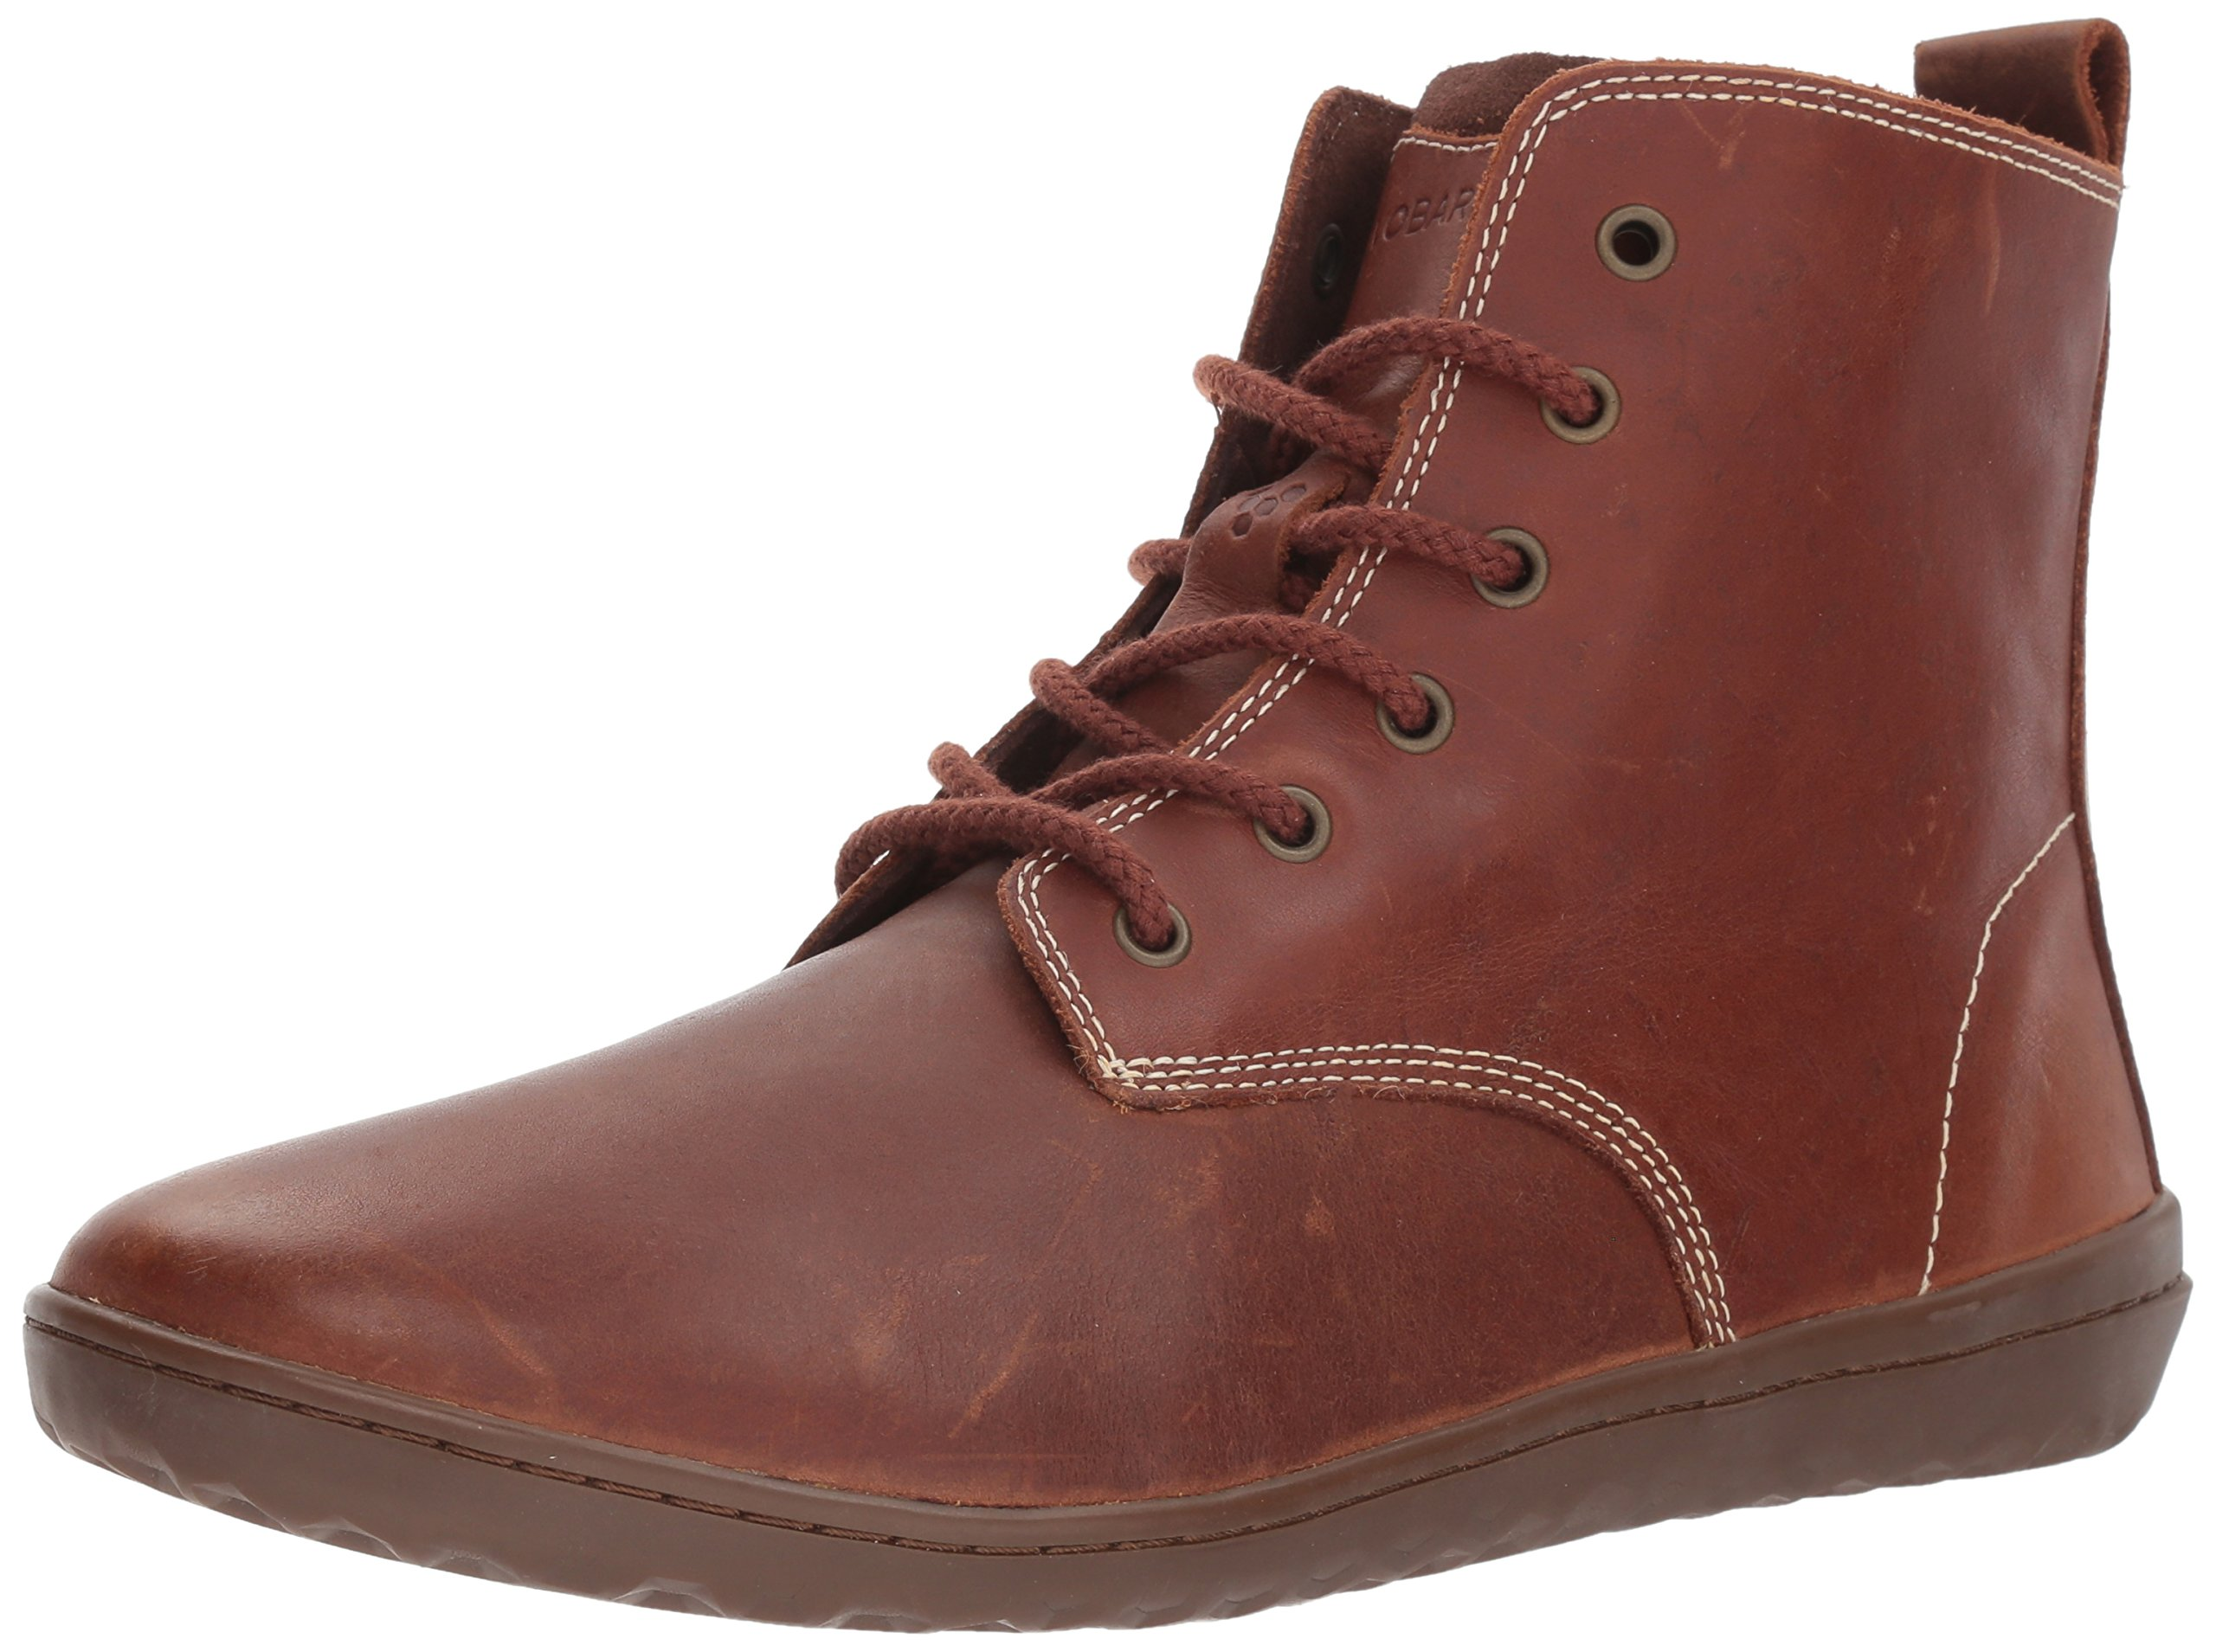 Vivobarefoot Men's Scott Casual Lace up Thermal Winter Boot, Tobacco, 47 D EU (13 US)